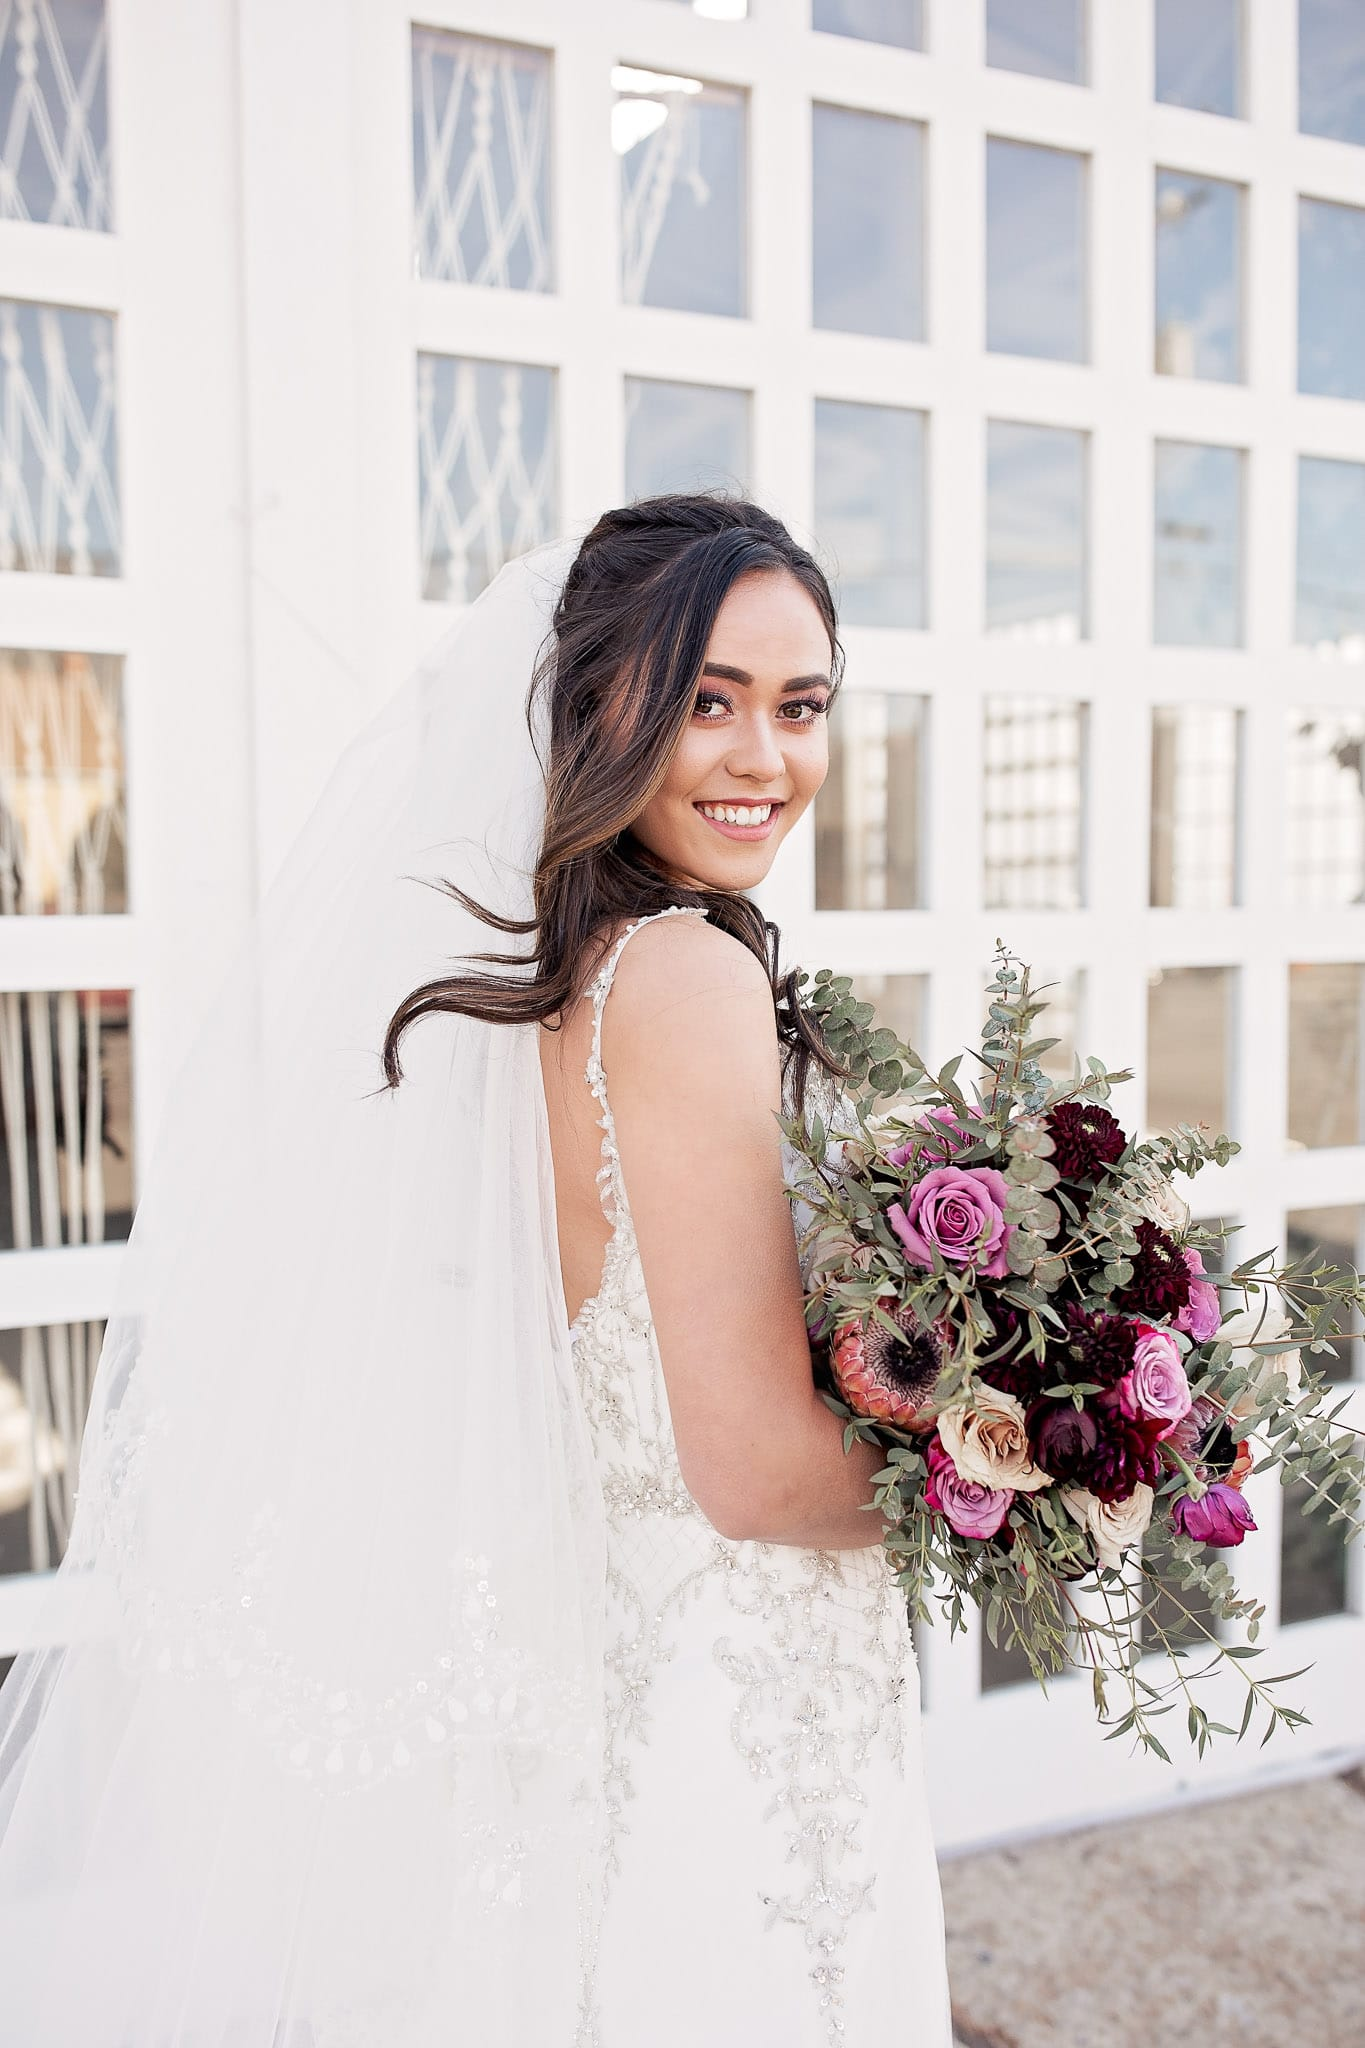 Chic and Romantic Styled Shoot Featuring Four Maggie Sottero Wedding Gowns.